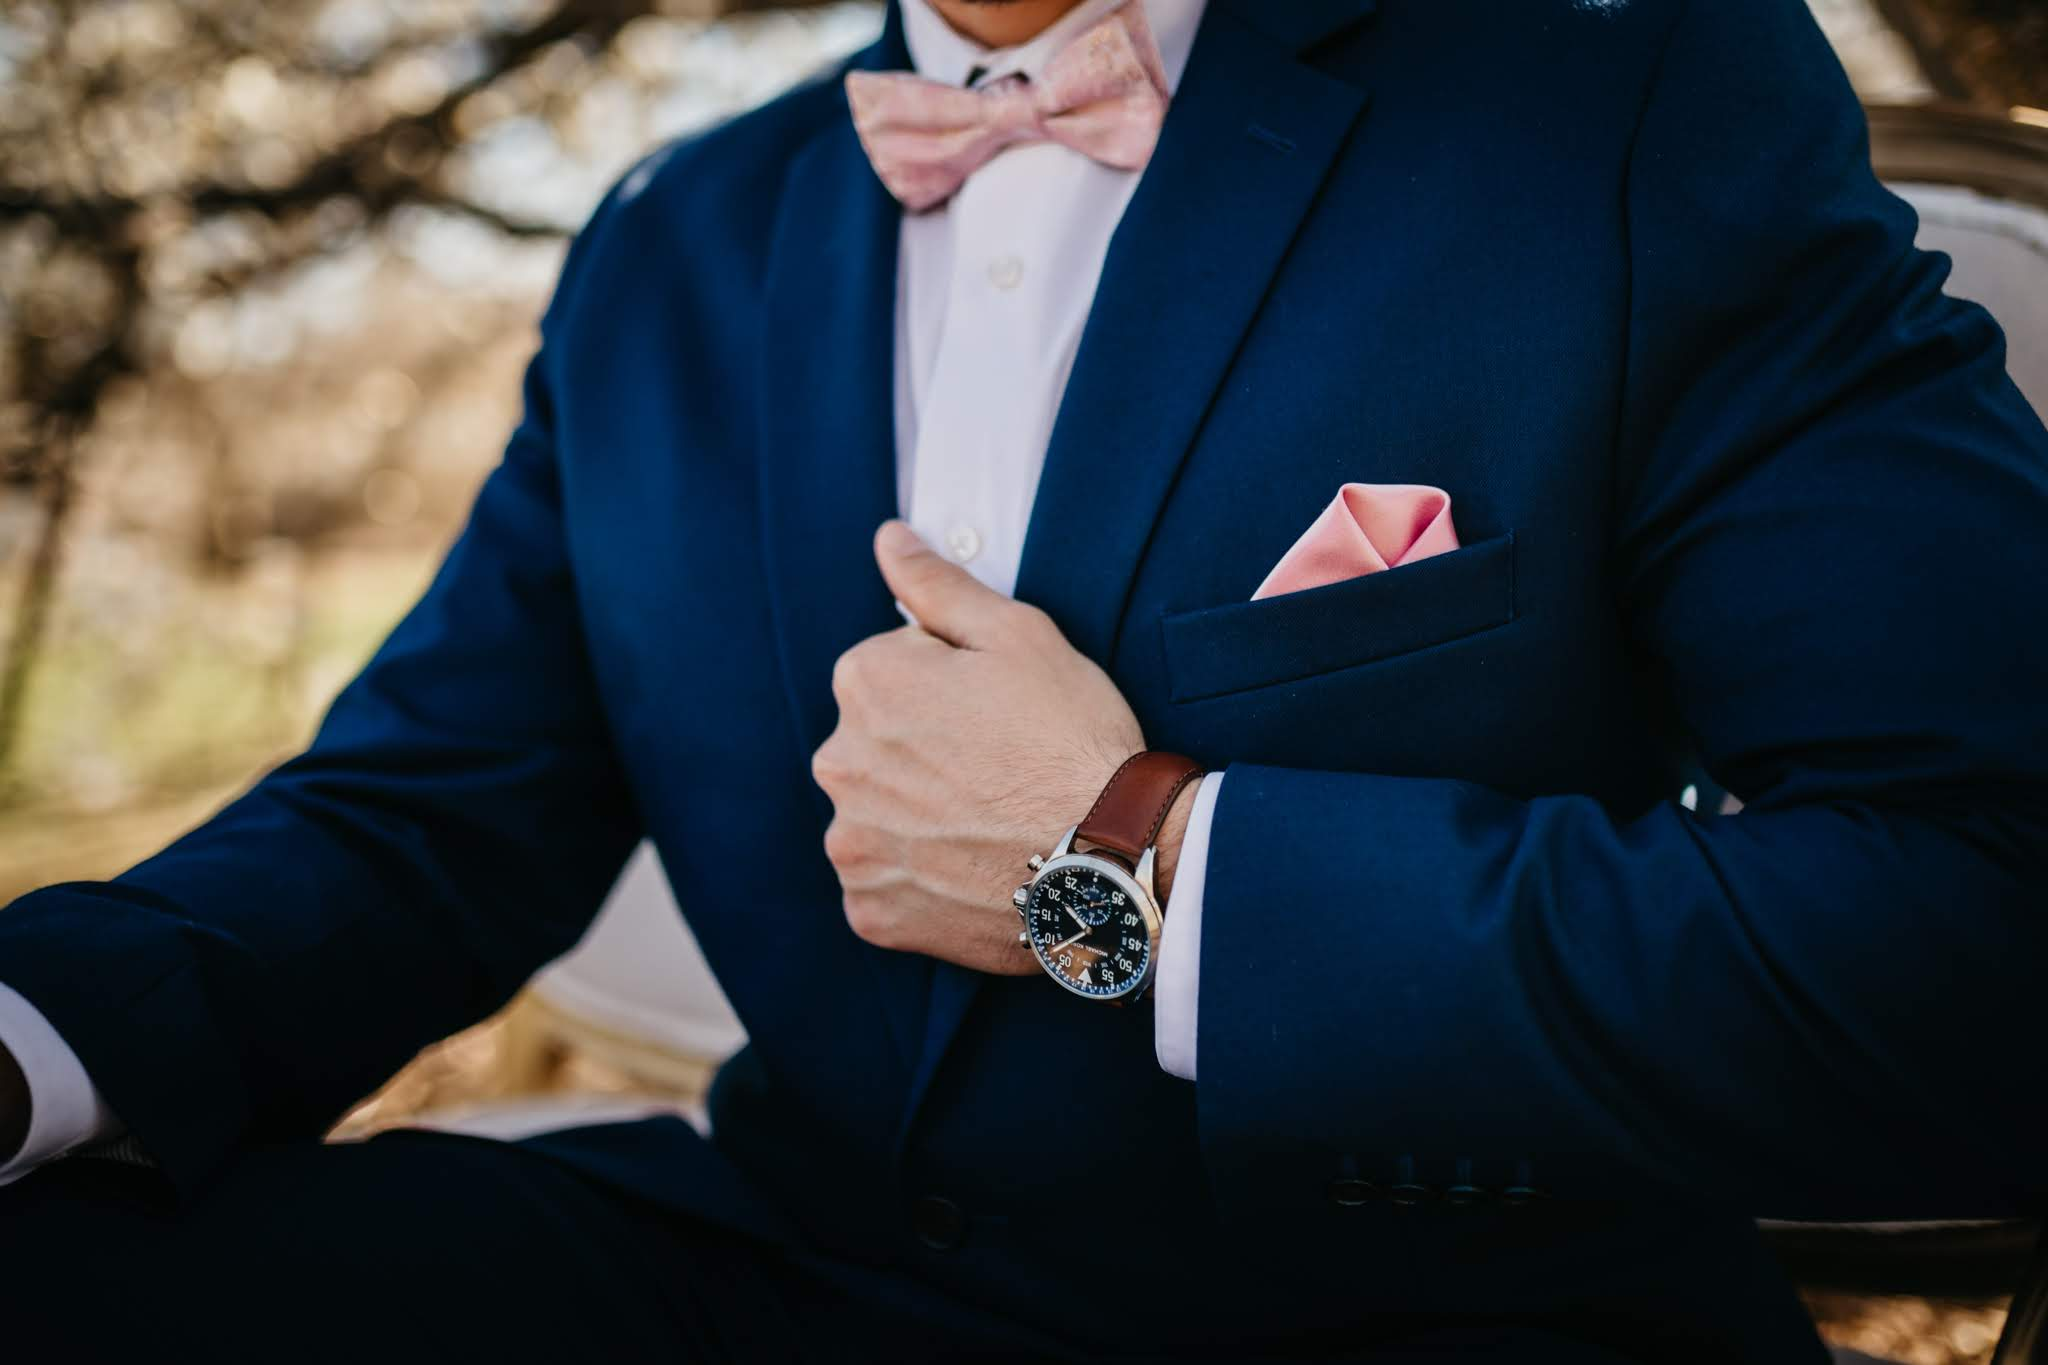 Groom in a Navy Blue Suit with a Blush Bow Tie - Spring Wedding at the UW Madison Arboretum in Madison Wisconsin - Phoenix & Rose Photography